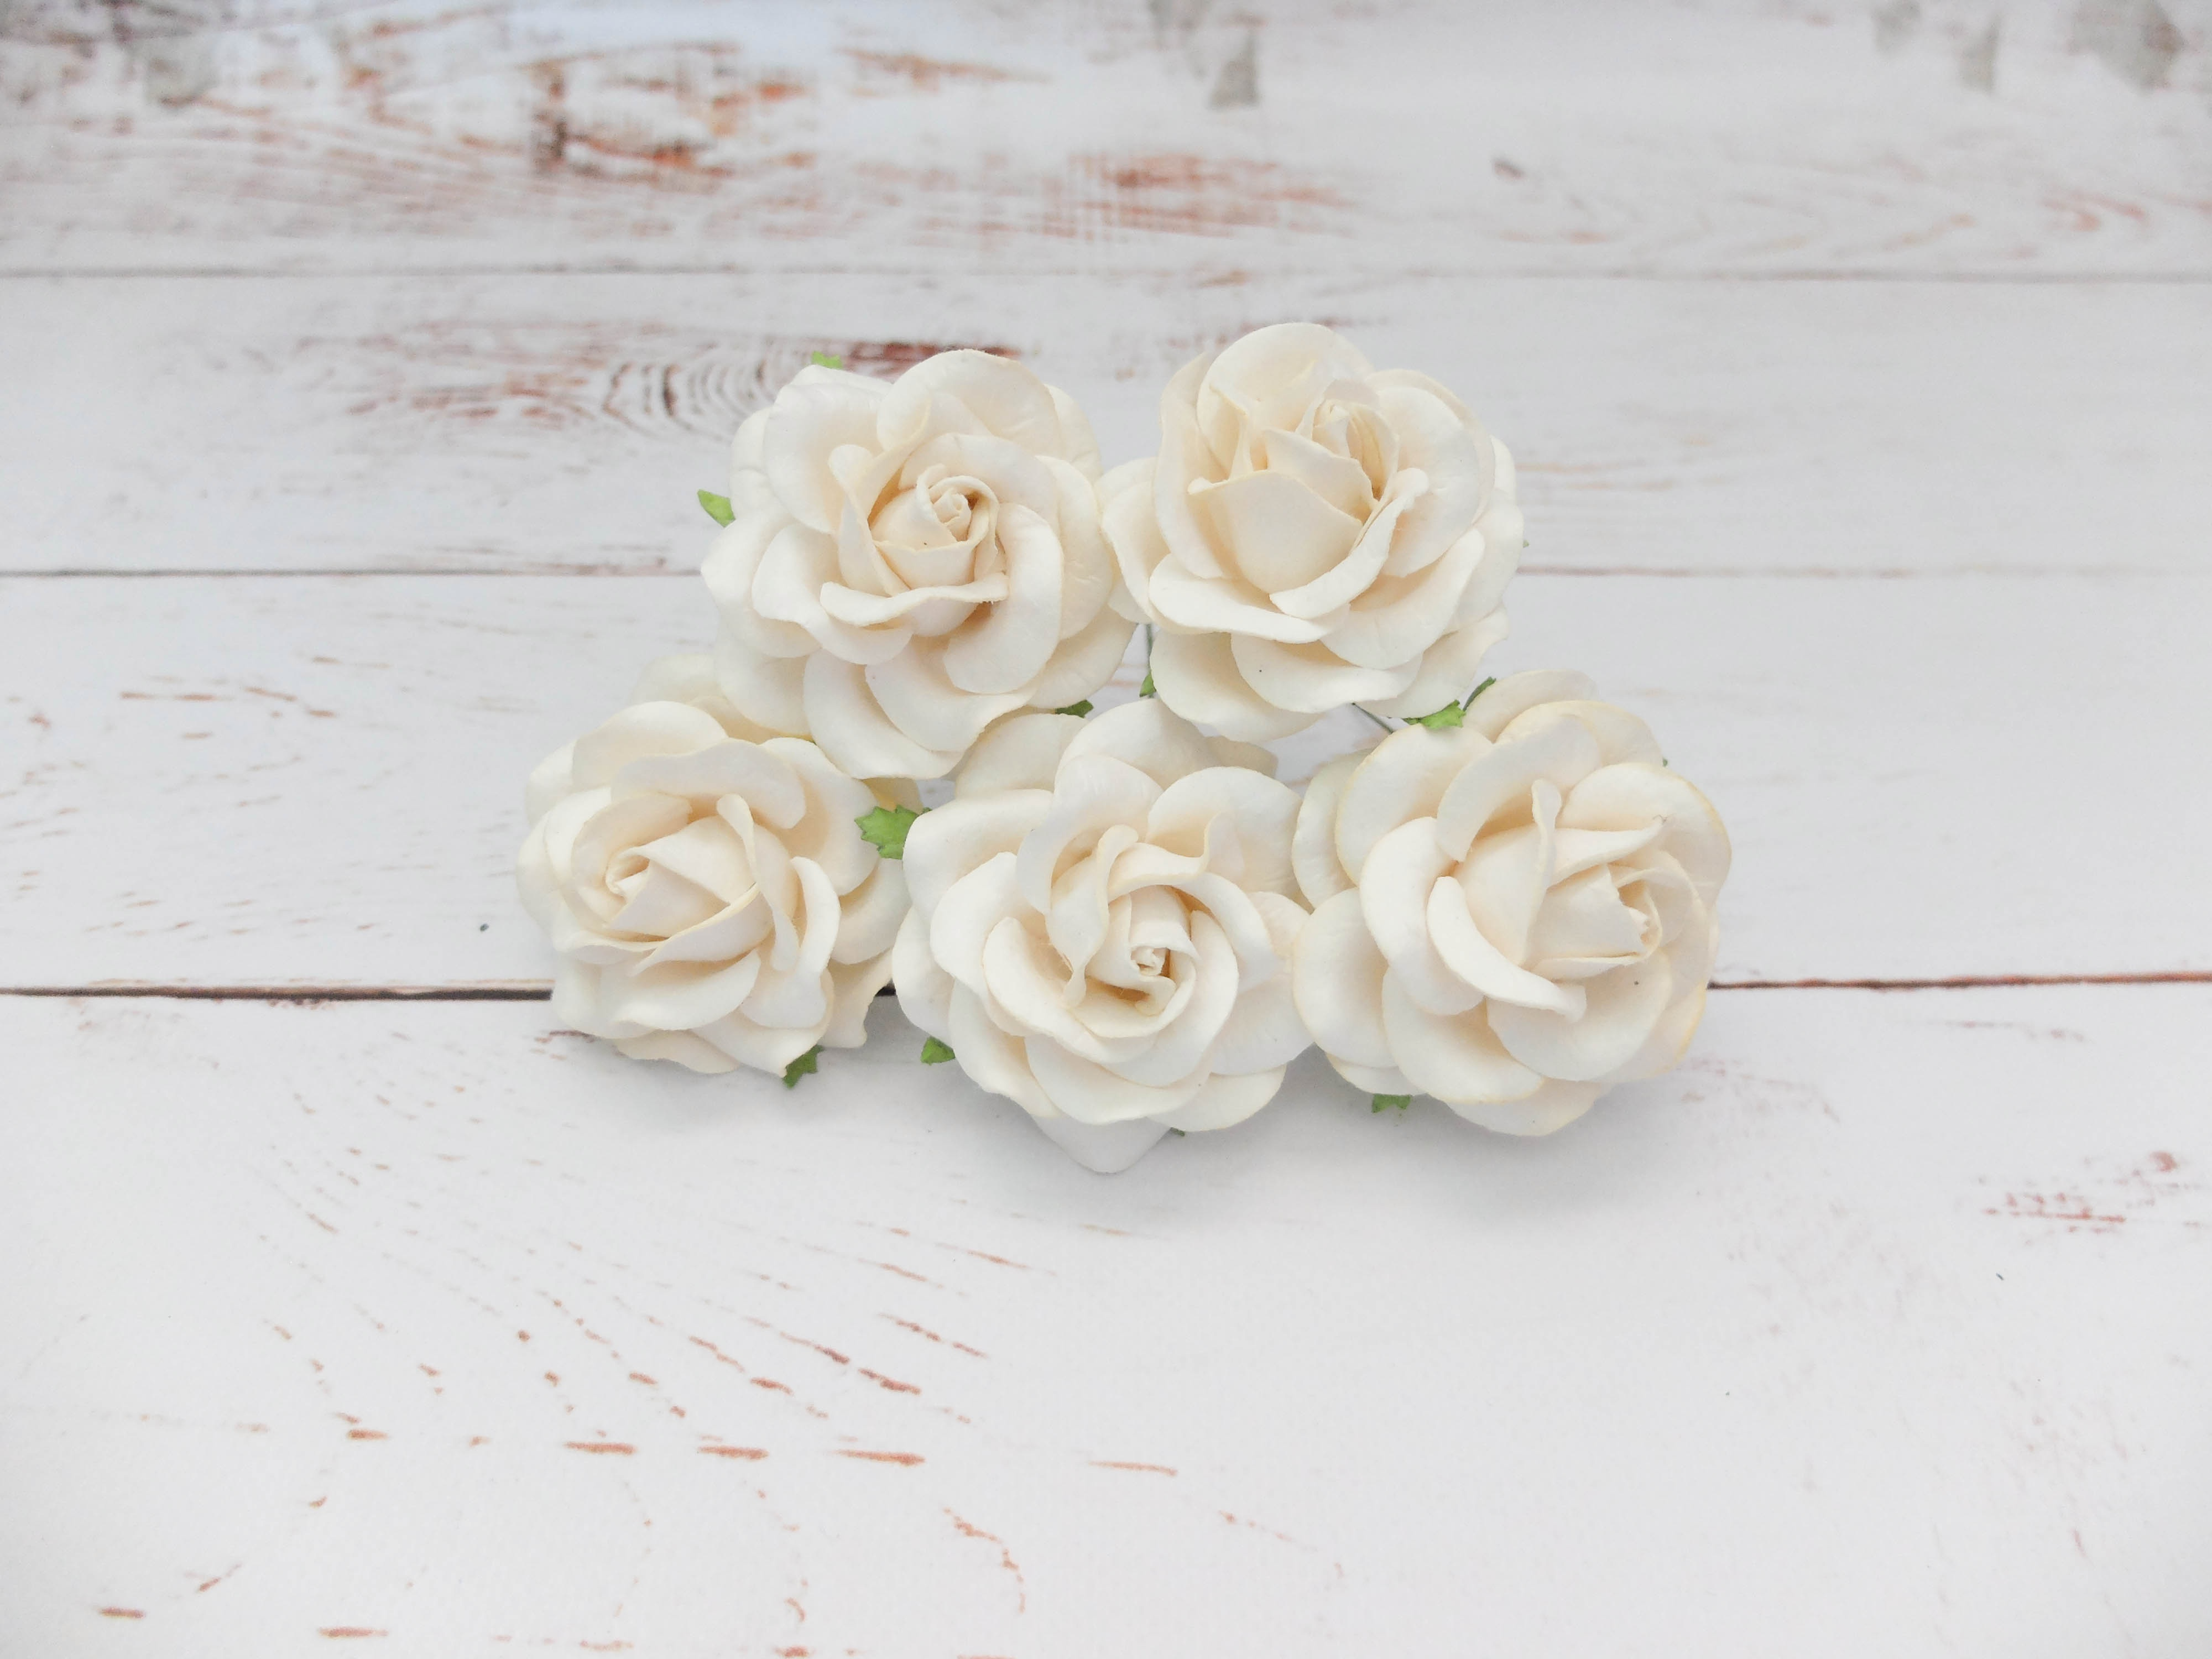 6 Cm Paper Roses 24 Roses 60mm Mulberry Paper With Wire Stems